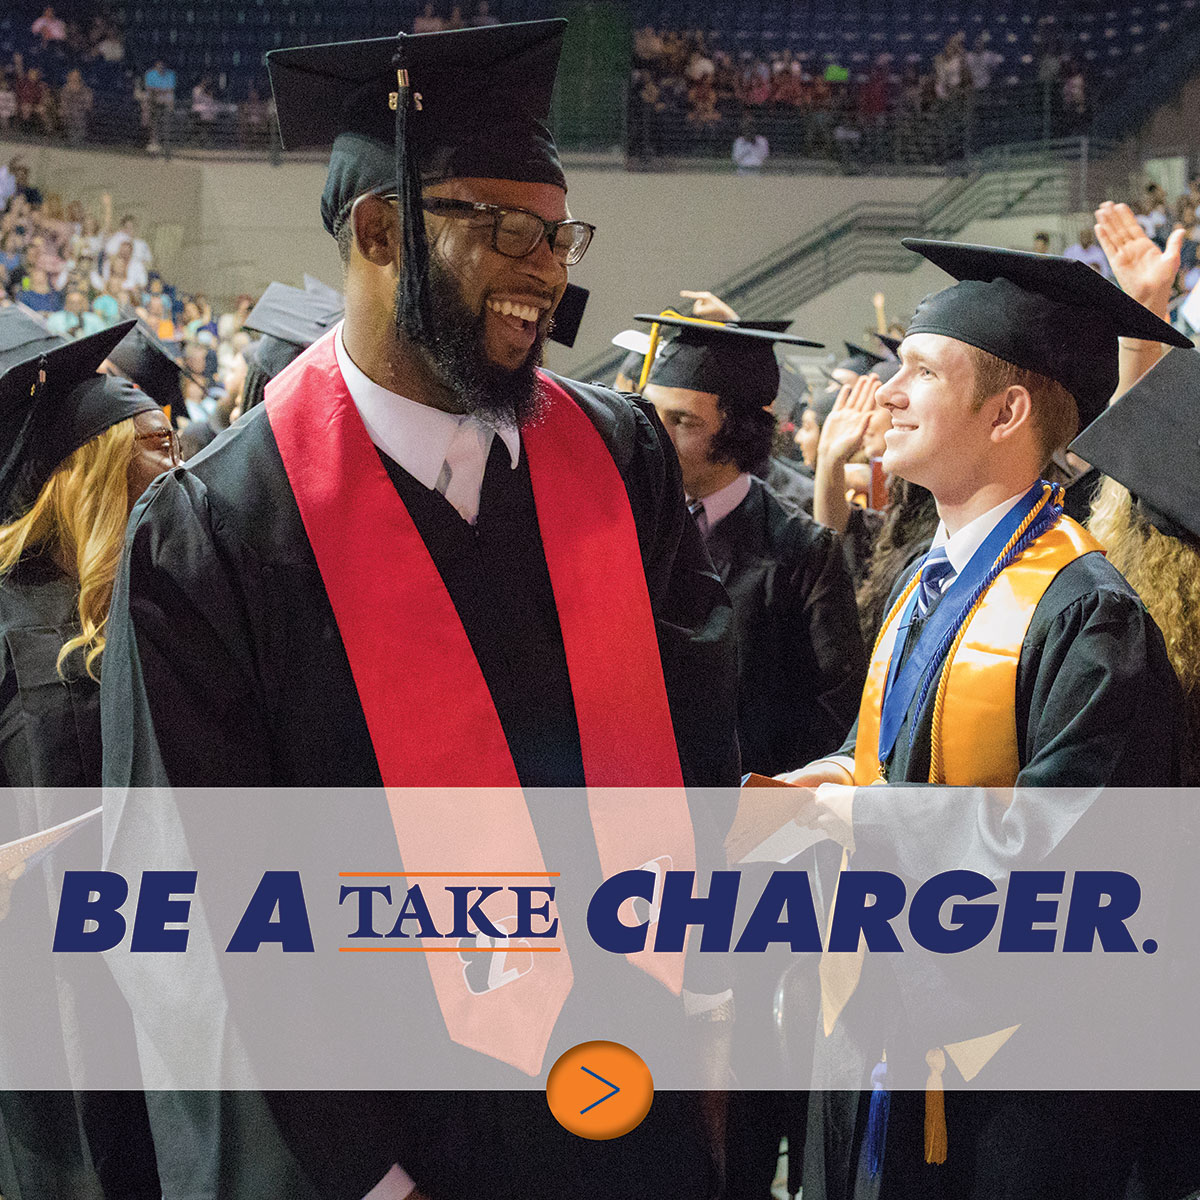 Be a take charger.